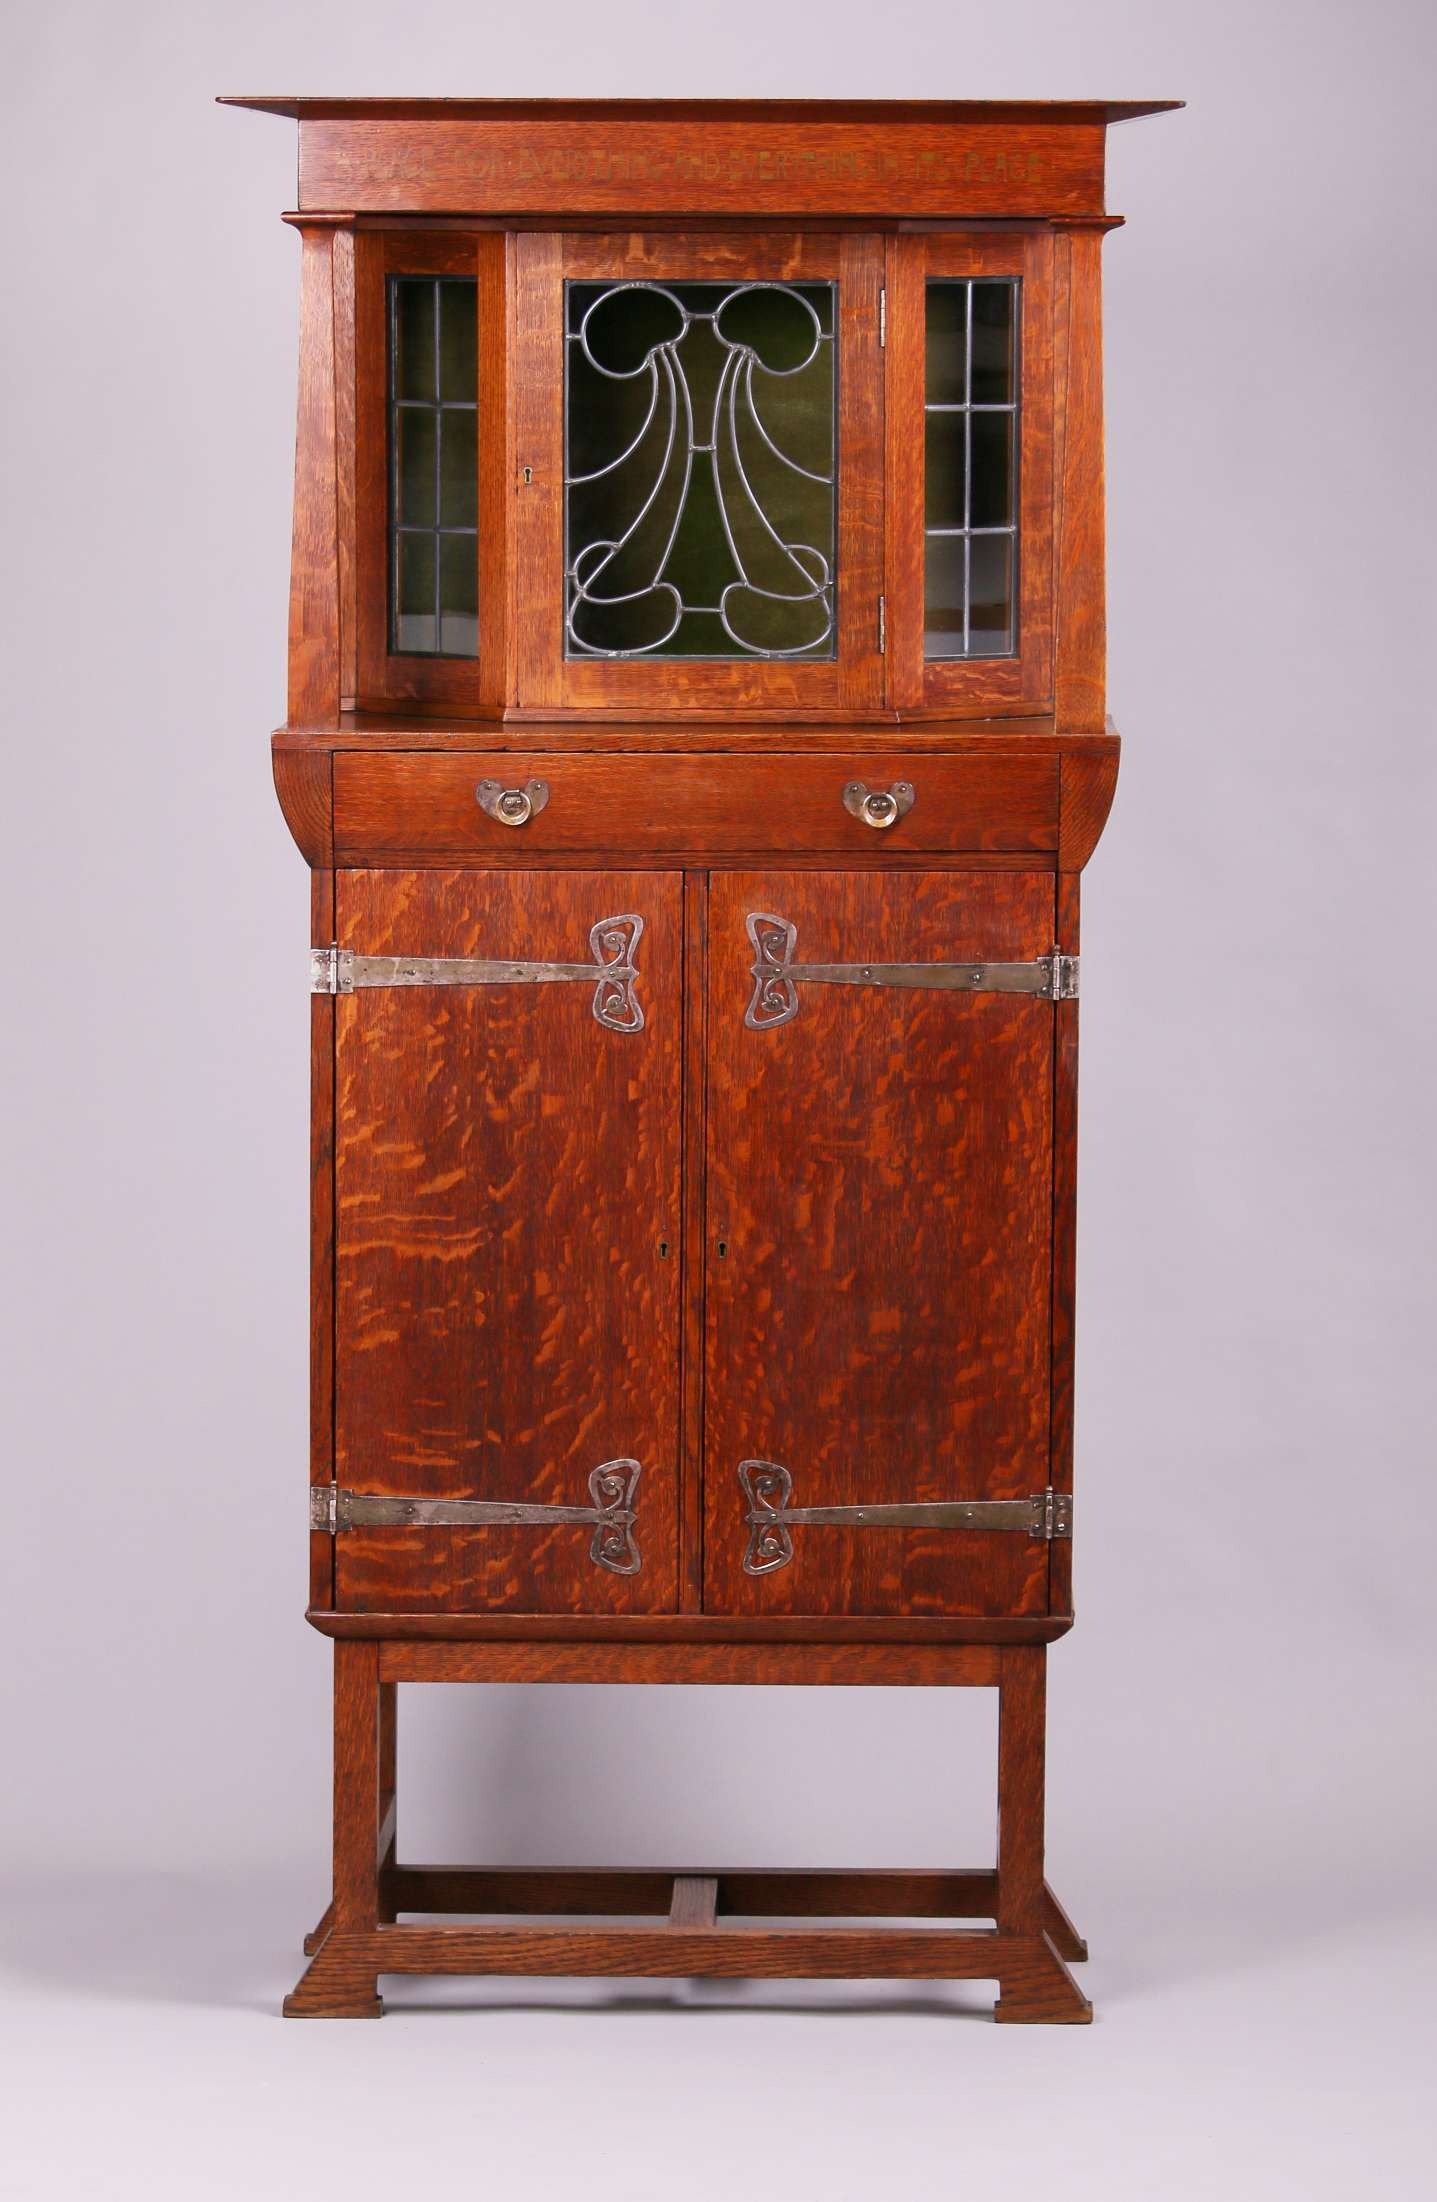 English Arts Amp Crafts Cabinet With Strap Hinges And Leaded